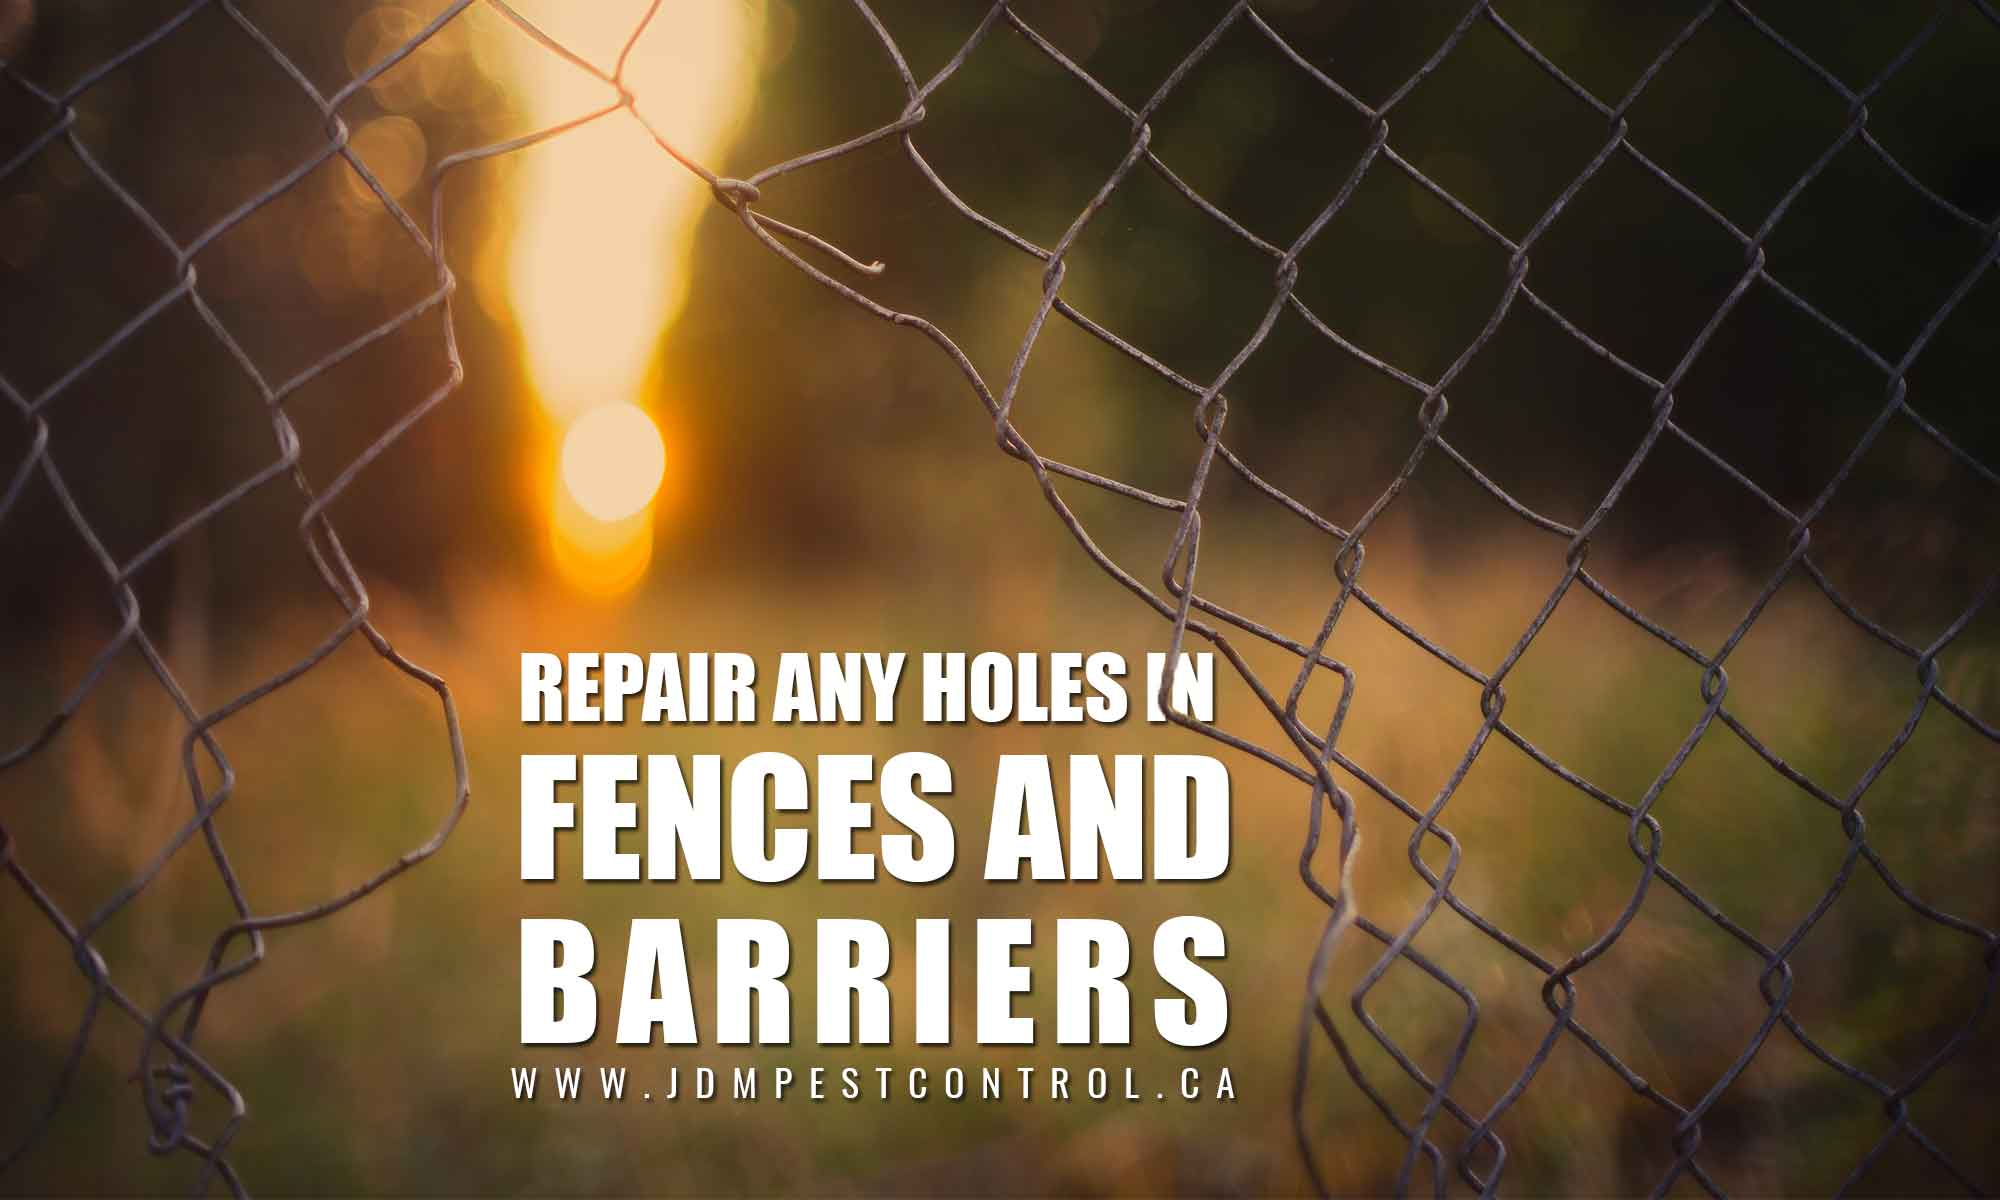 repair any holes